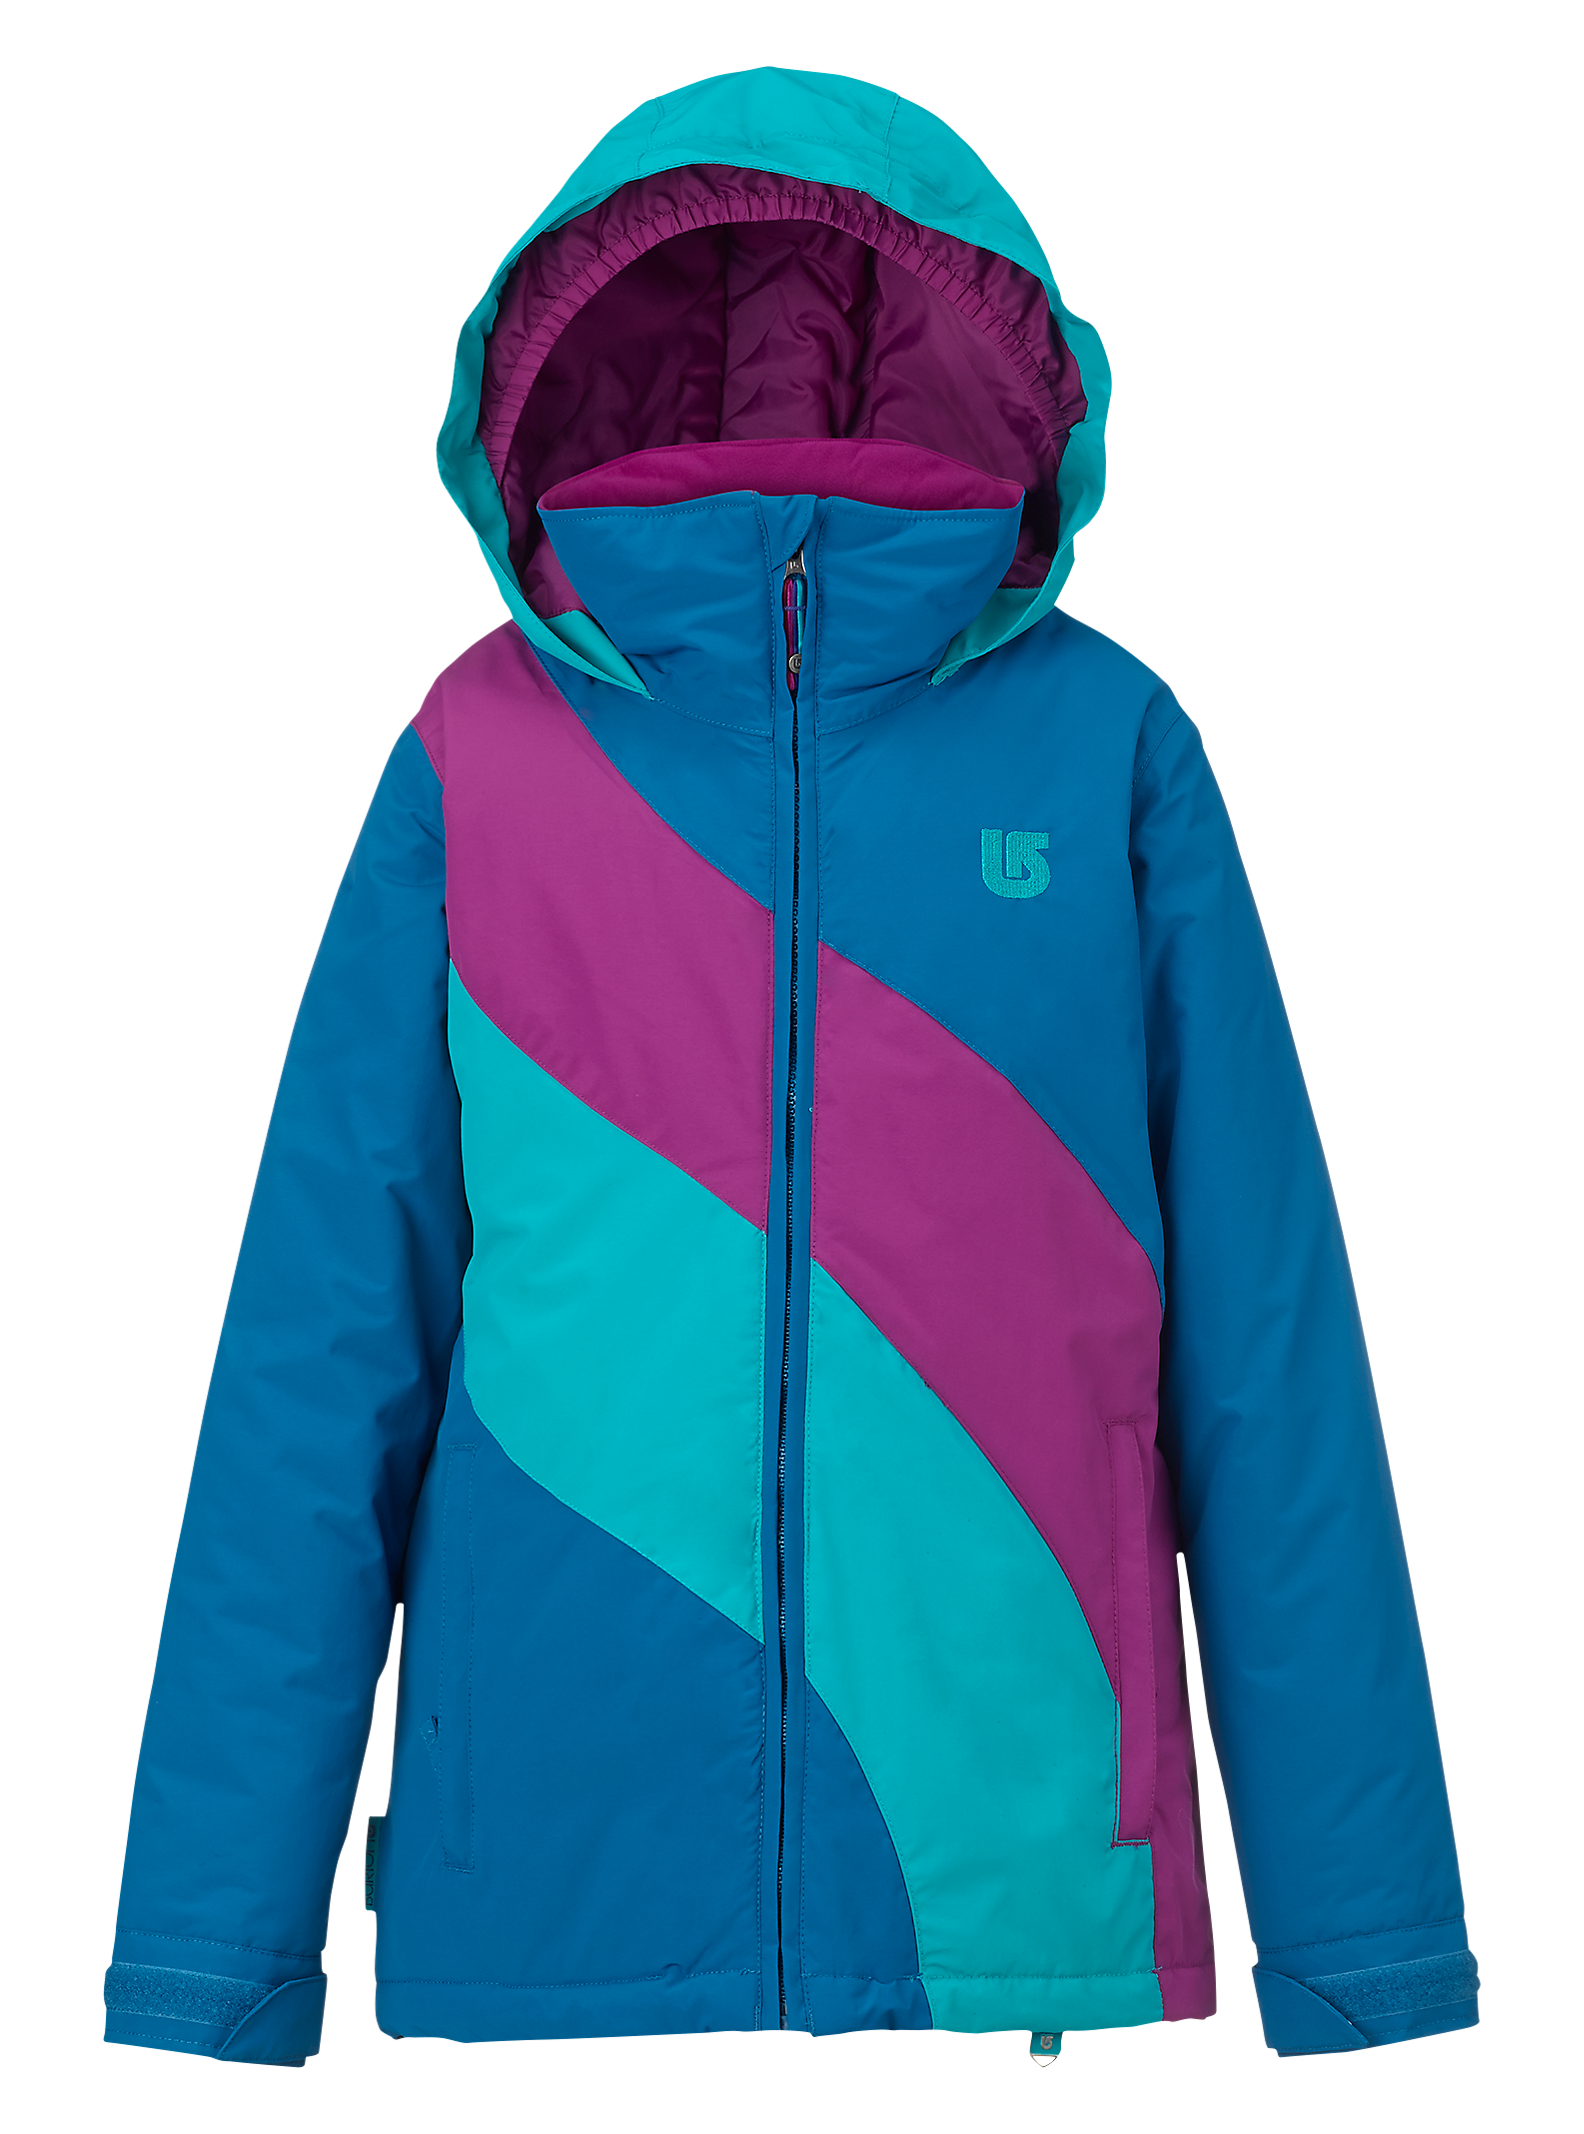 under armour jackets for girls. under armour jackets for girls e